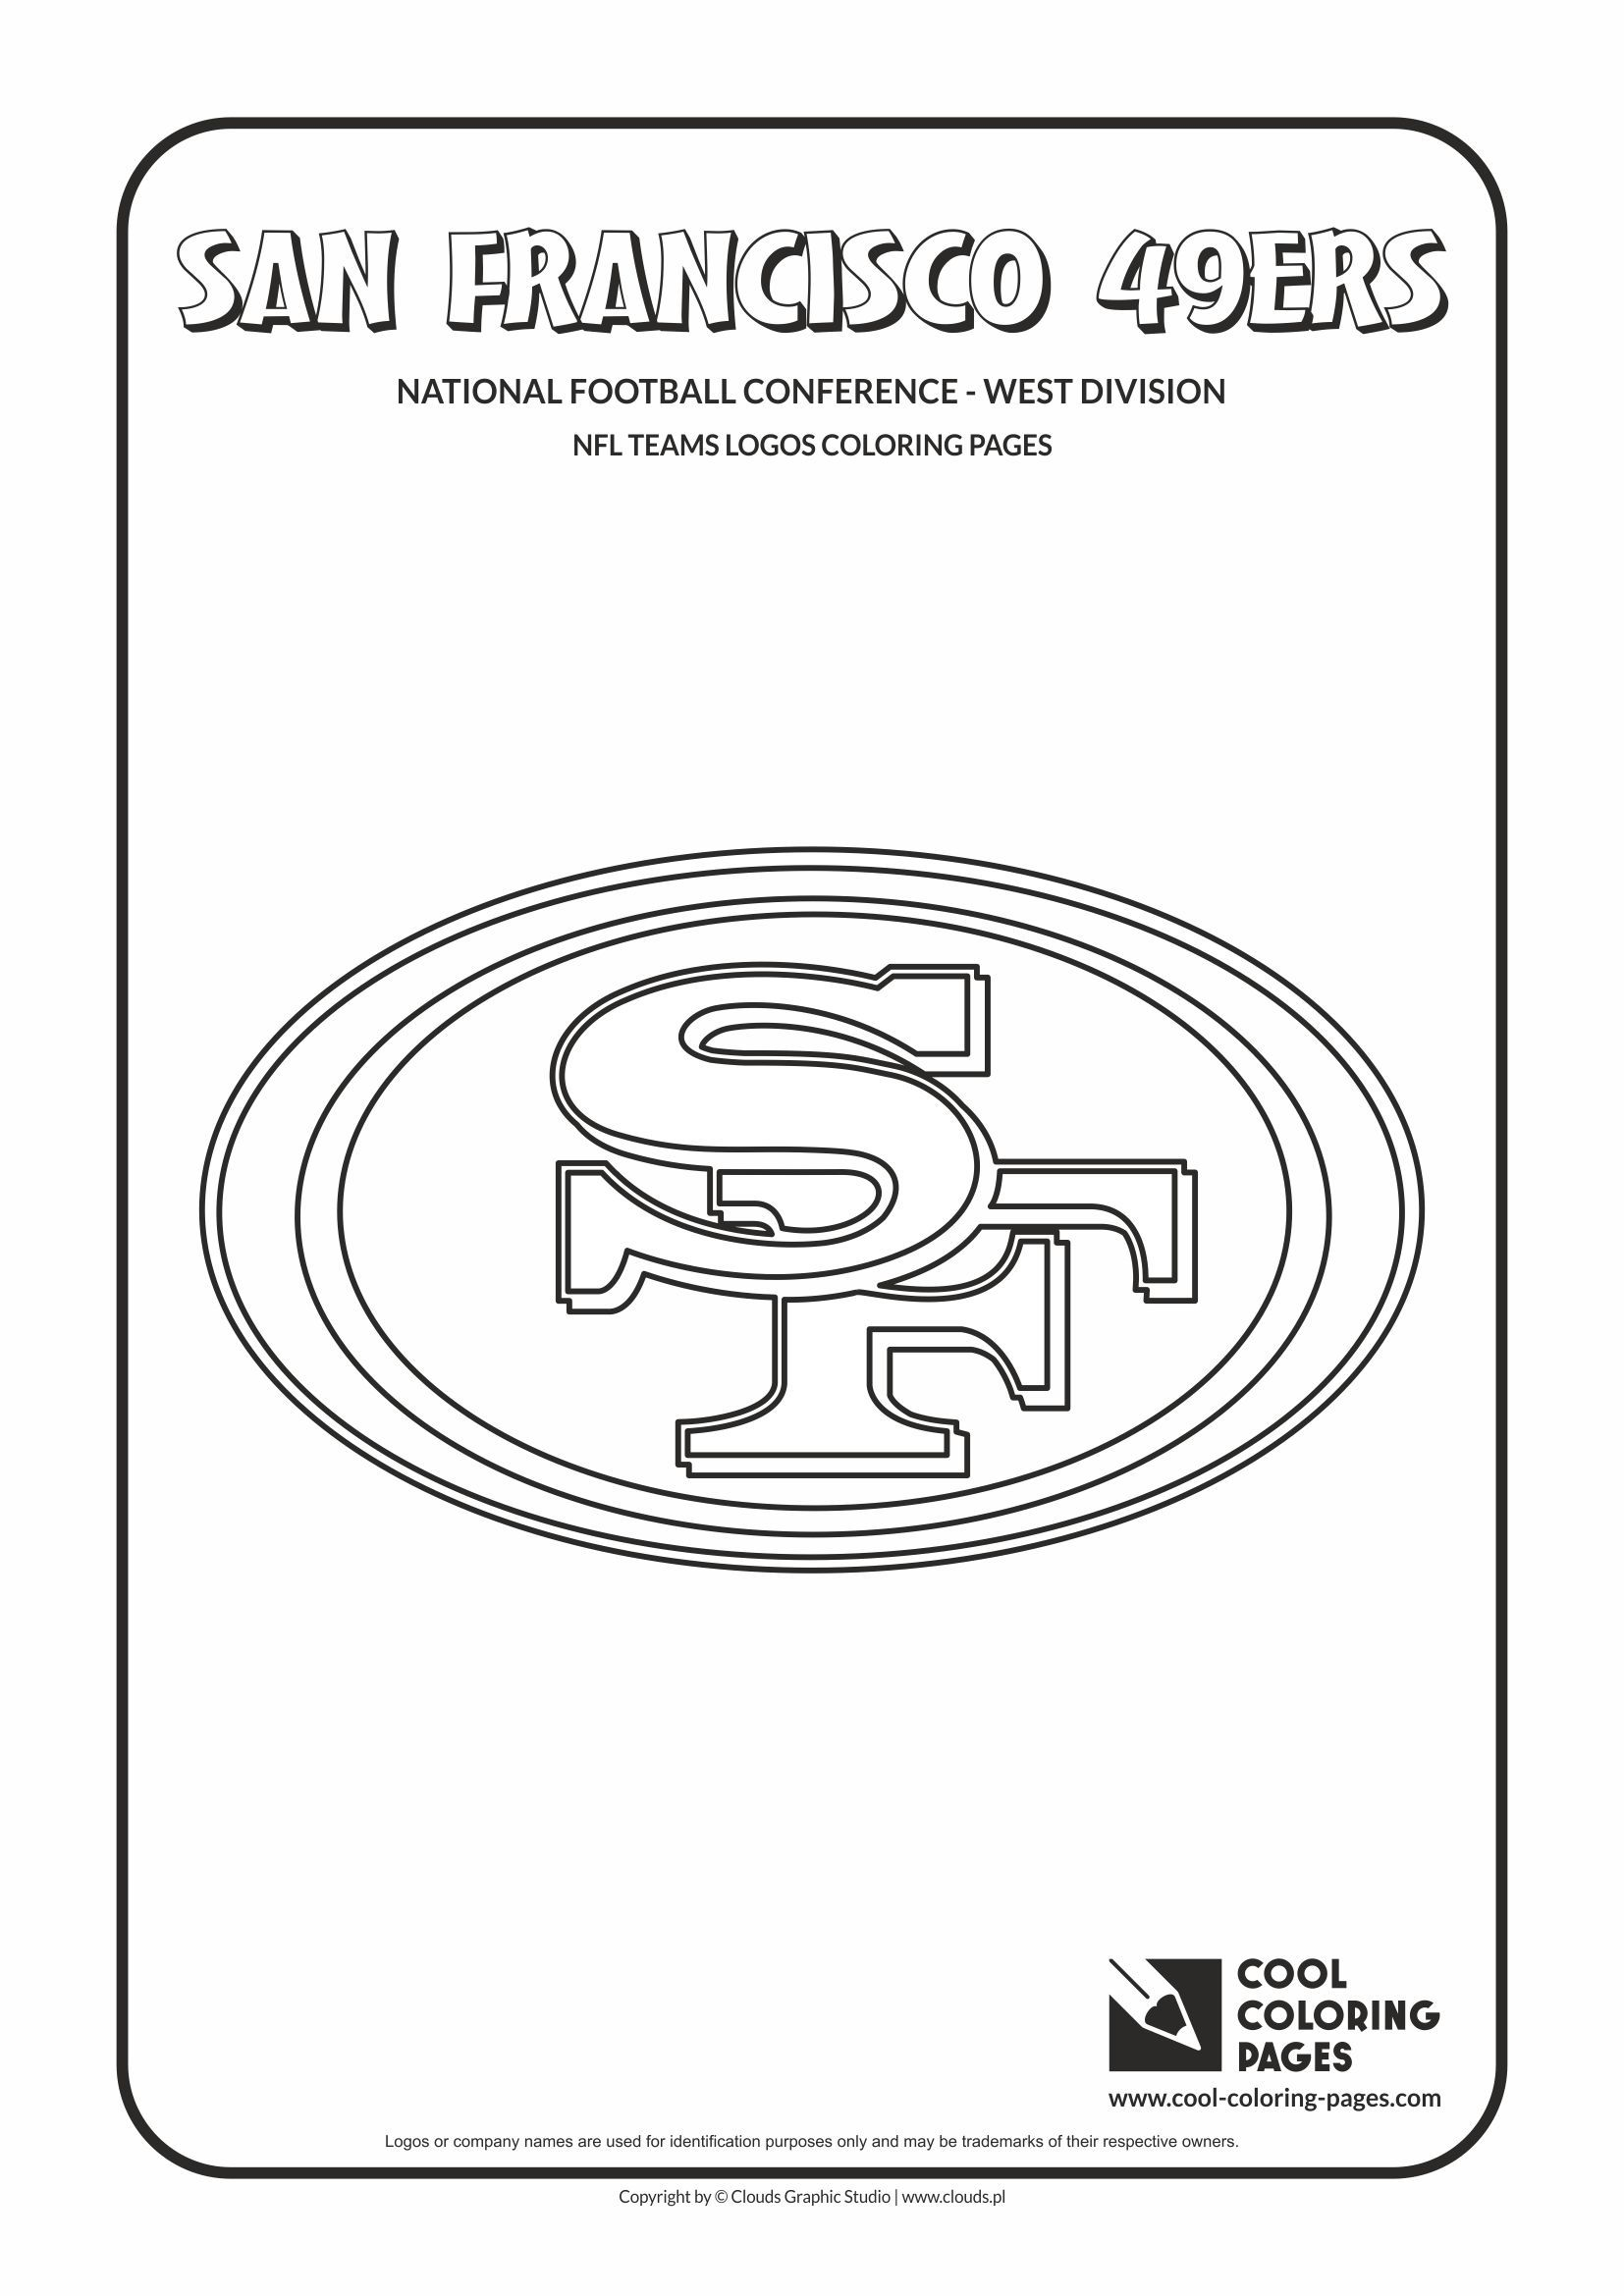 San Francisco 49ers Nfl American Football Teams Logos Coloring